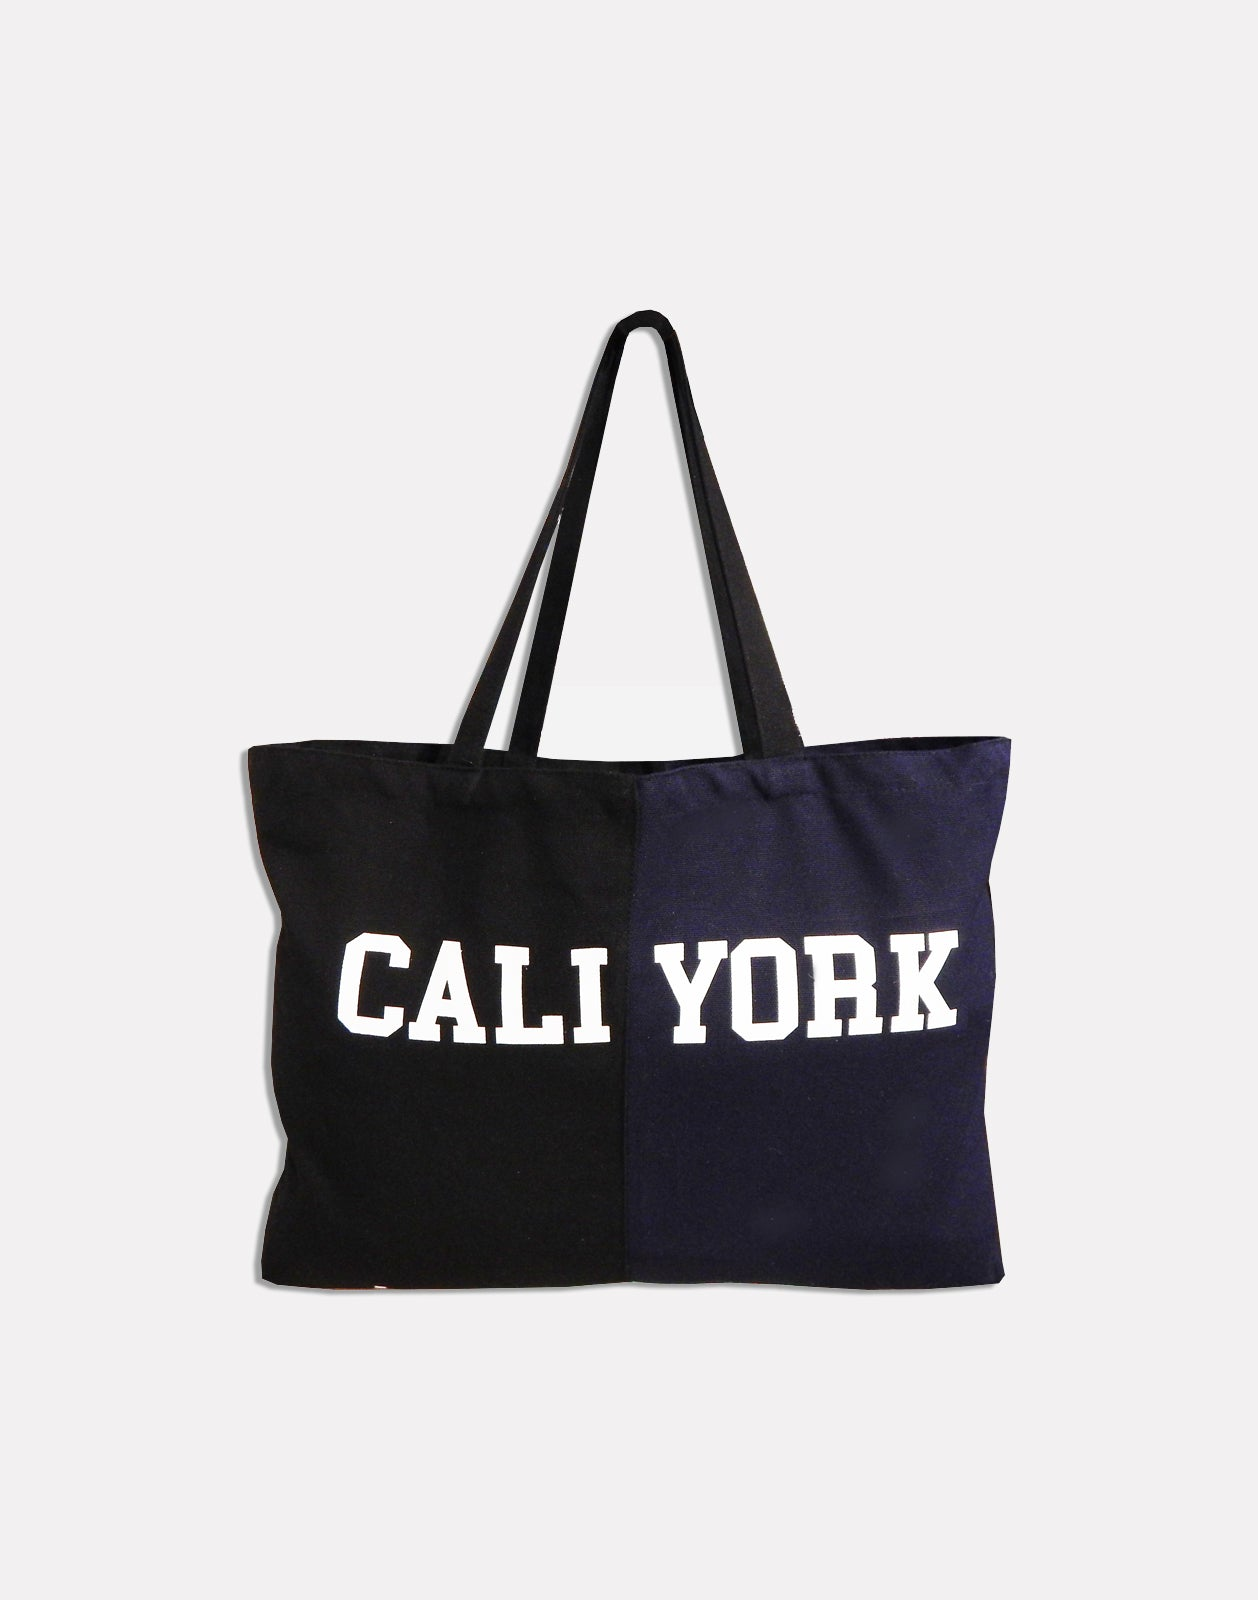 CaliYork canvas tote with top handles